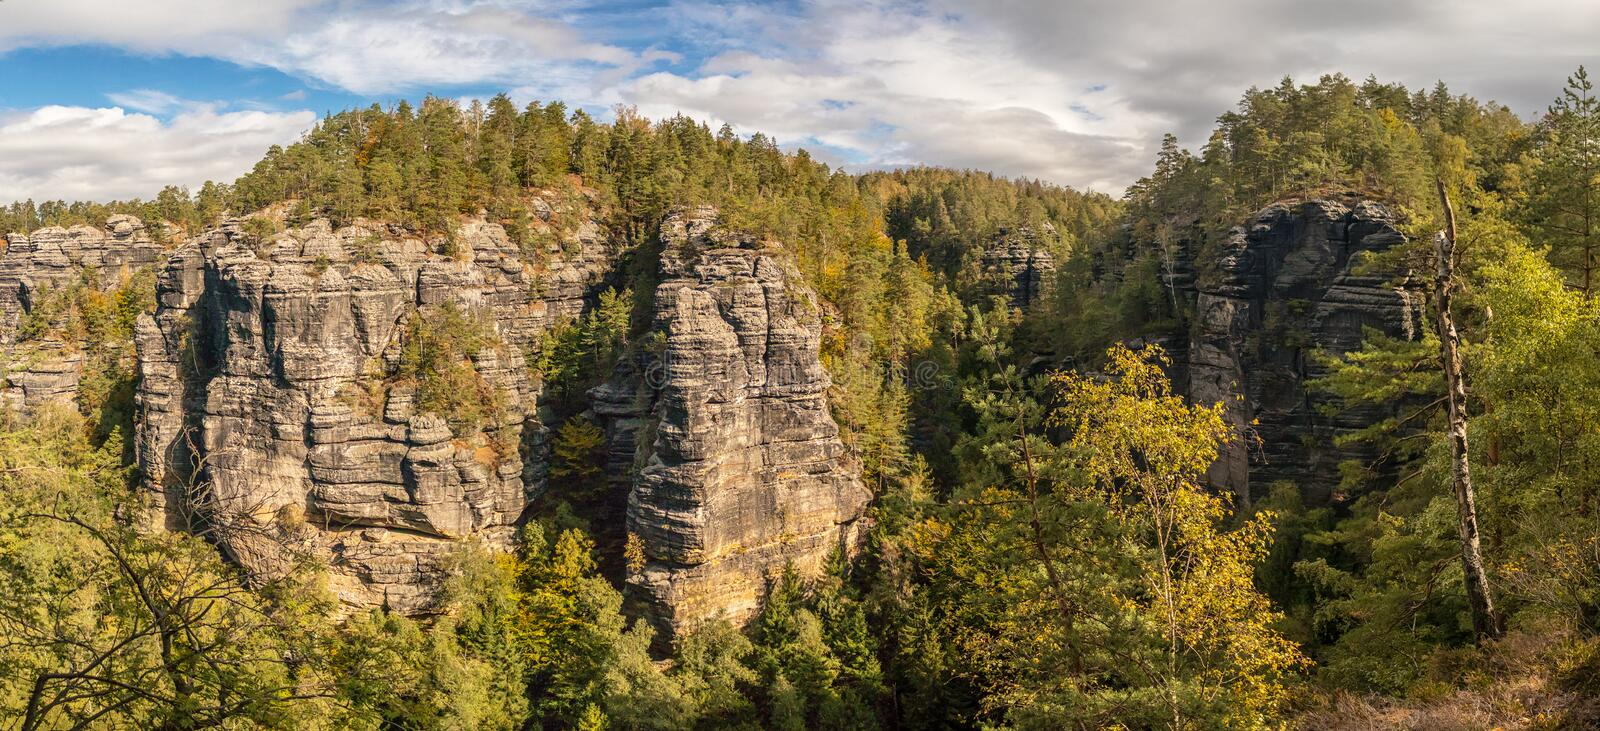 Landscape in mountains - panorama overlooking the valley with forests and sandstone rocks royalty free stock photo